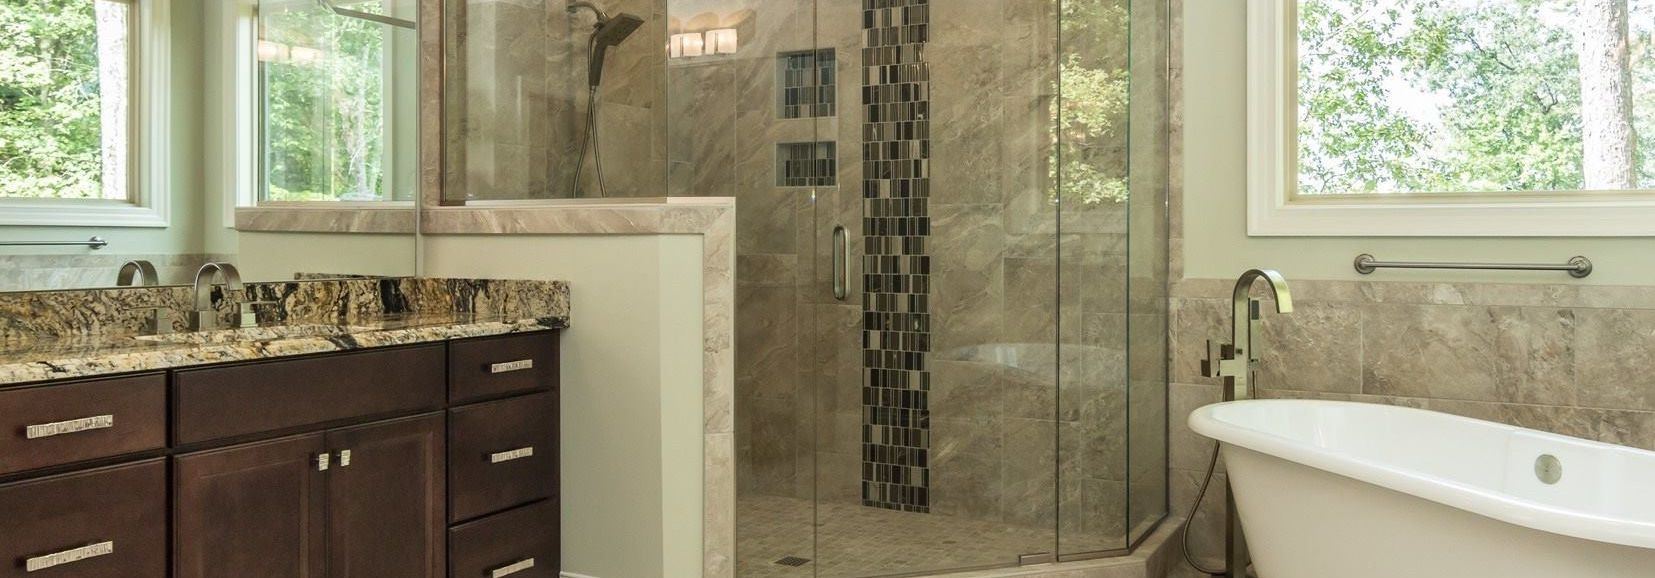 Batts Tile Products Raleigh Greenville Wilson Nc Floor Wall Tile